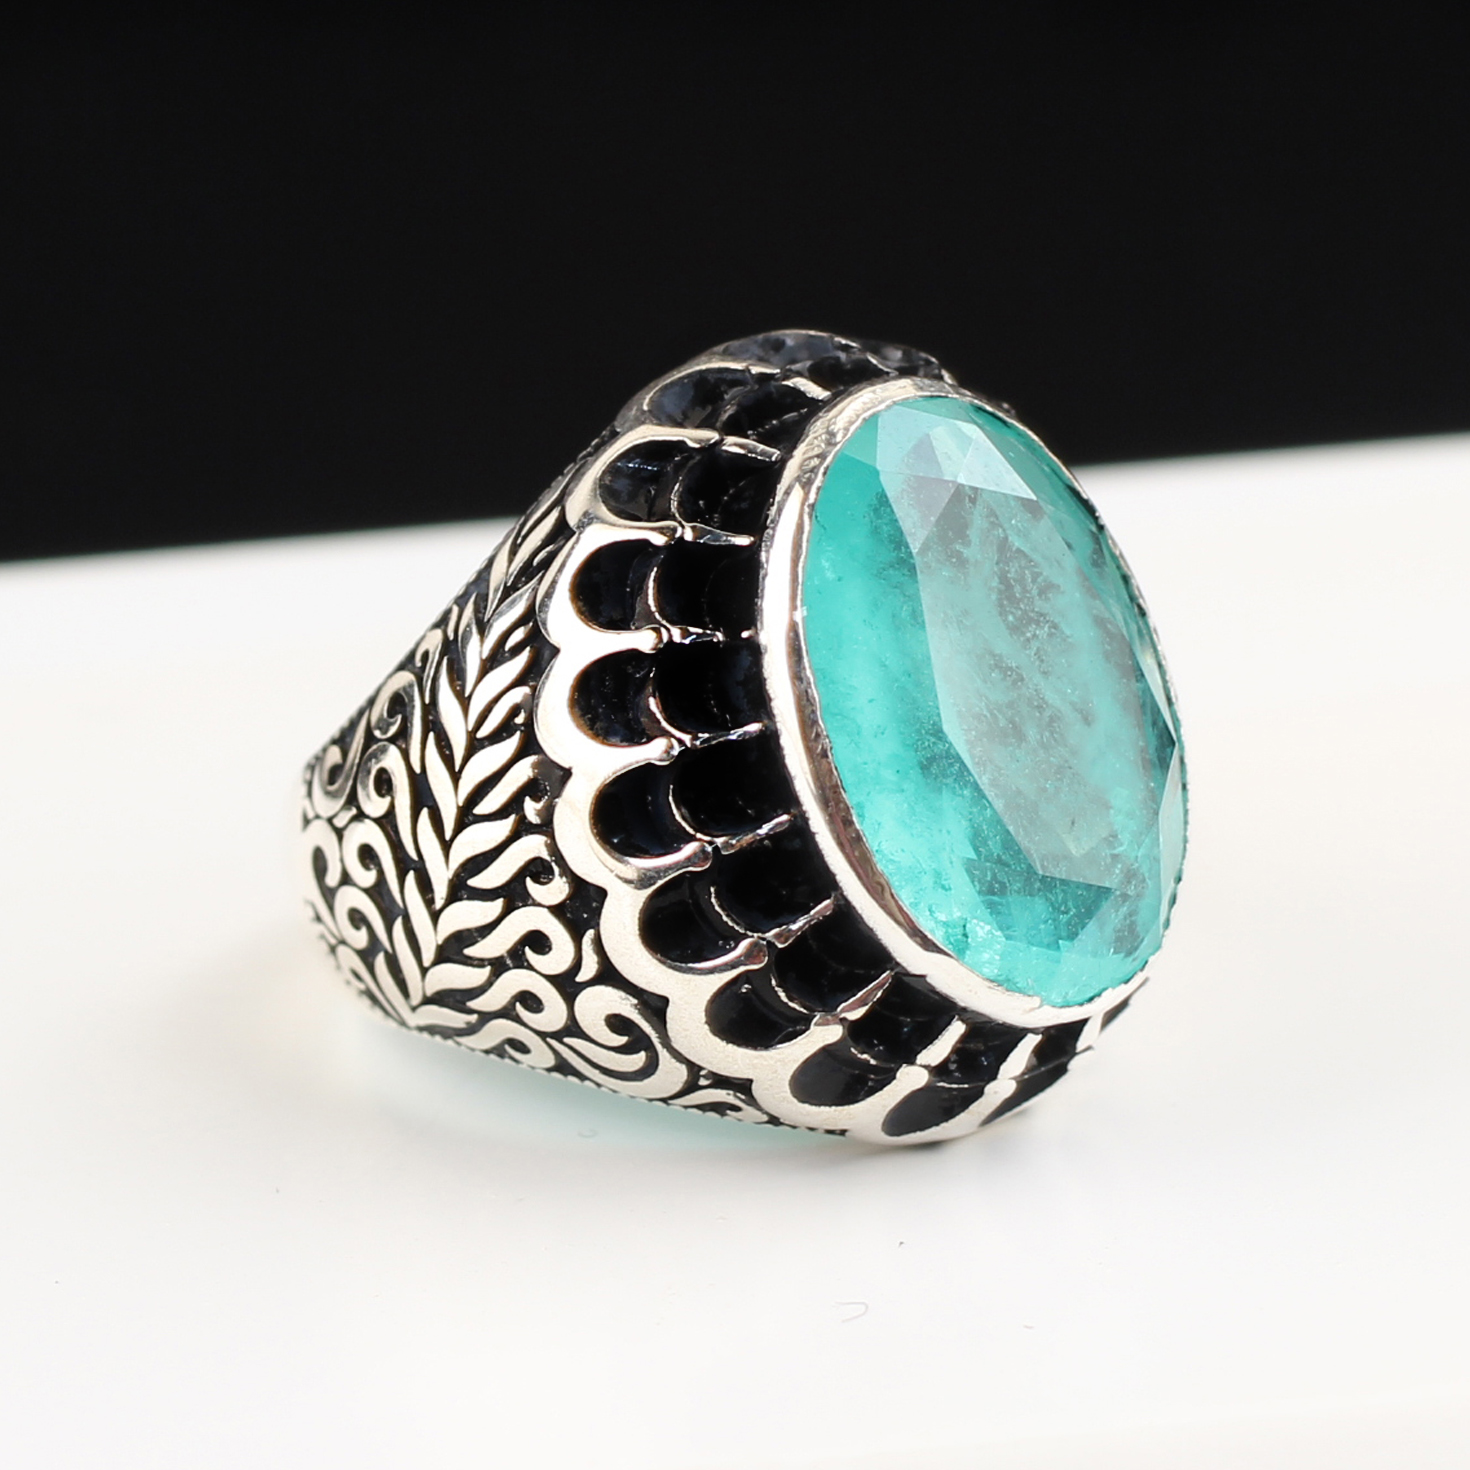 Blue Paraiba Tourmaline Ring, Mens 925 Silver Handmade Ring, Handmade Man Intricate Sterling Silver Paraiba Ring